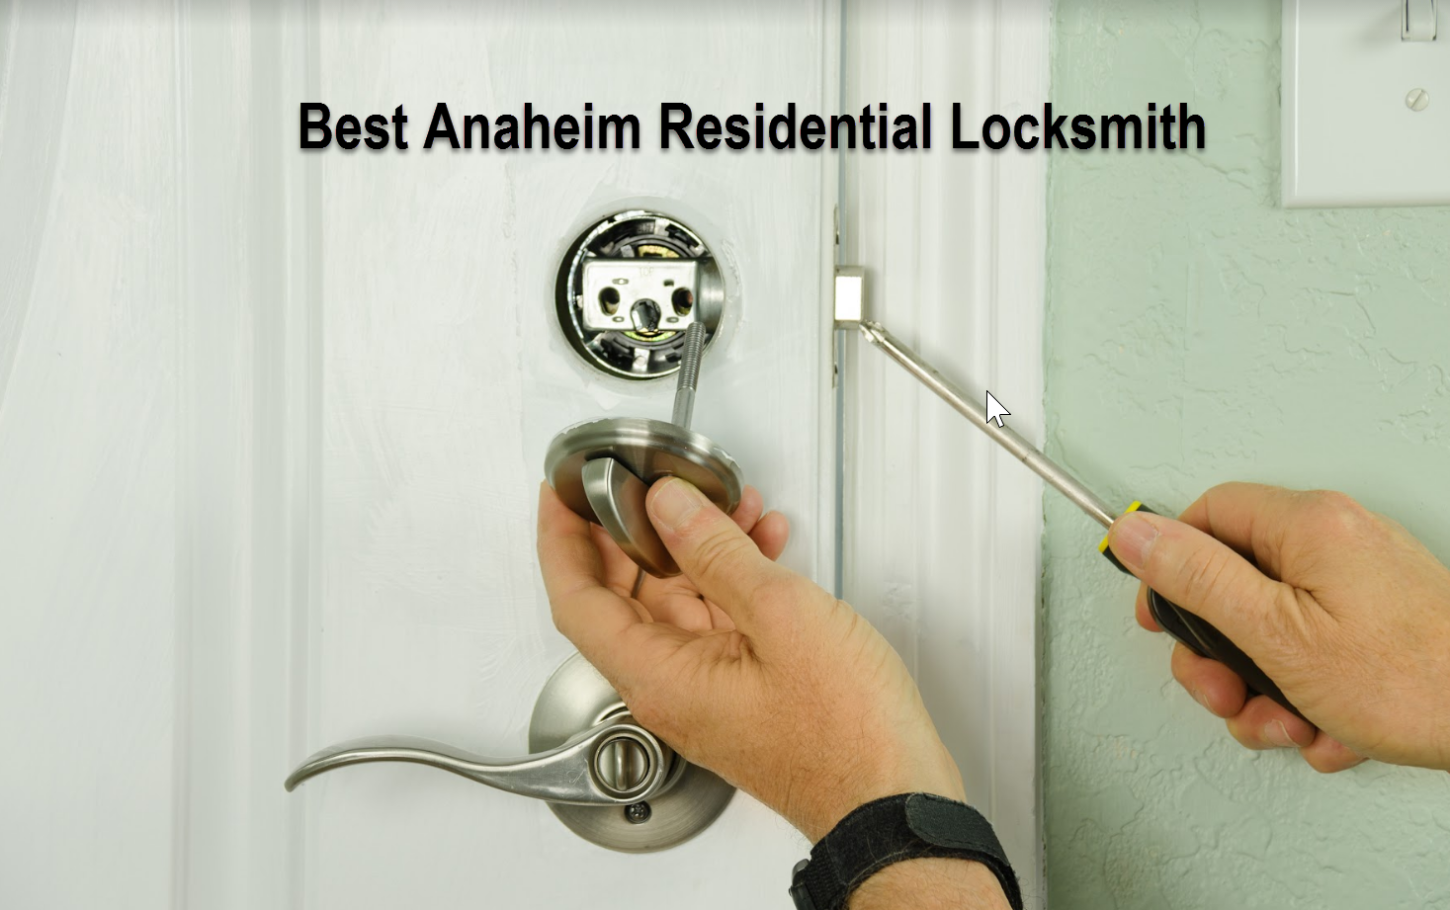 Best Anaheim Residential Locksmith